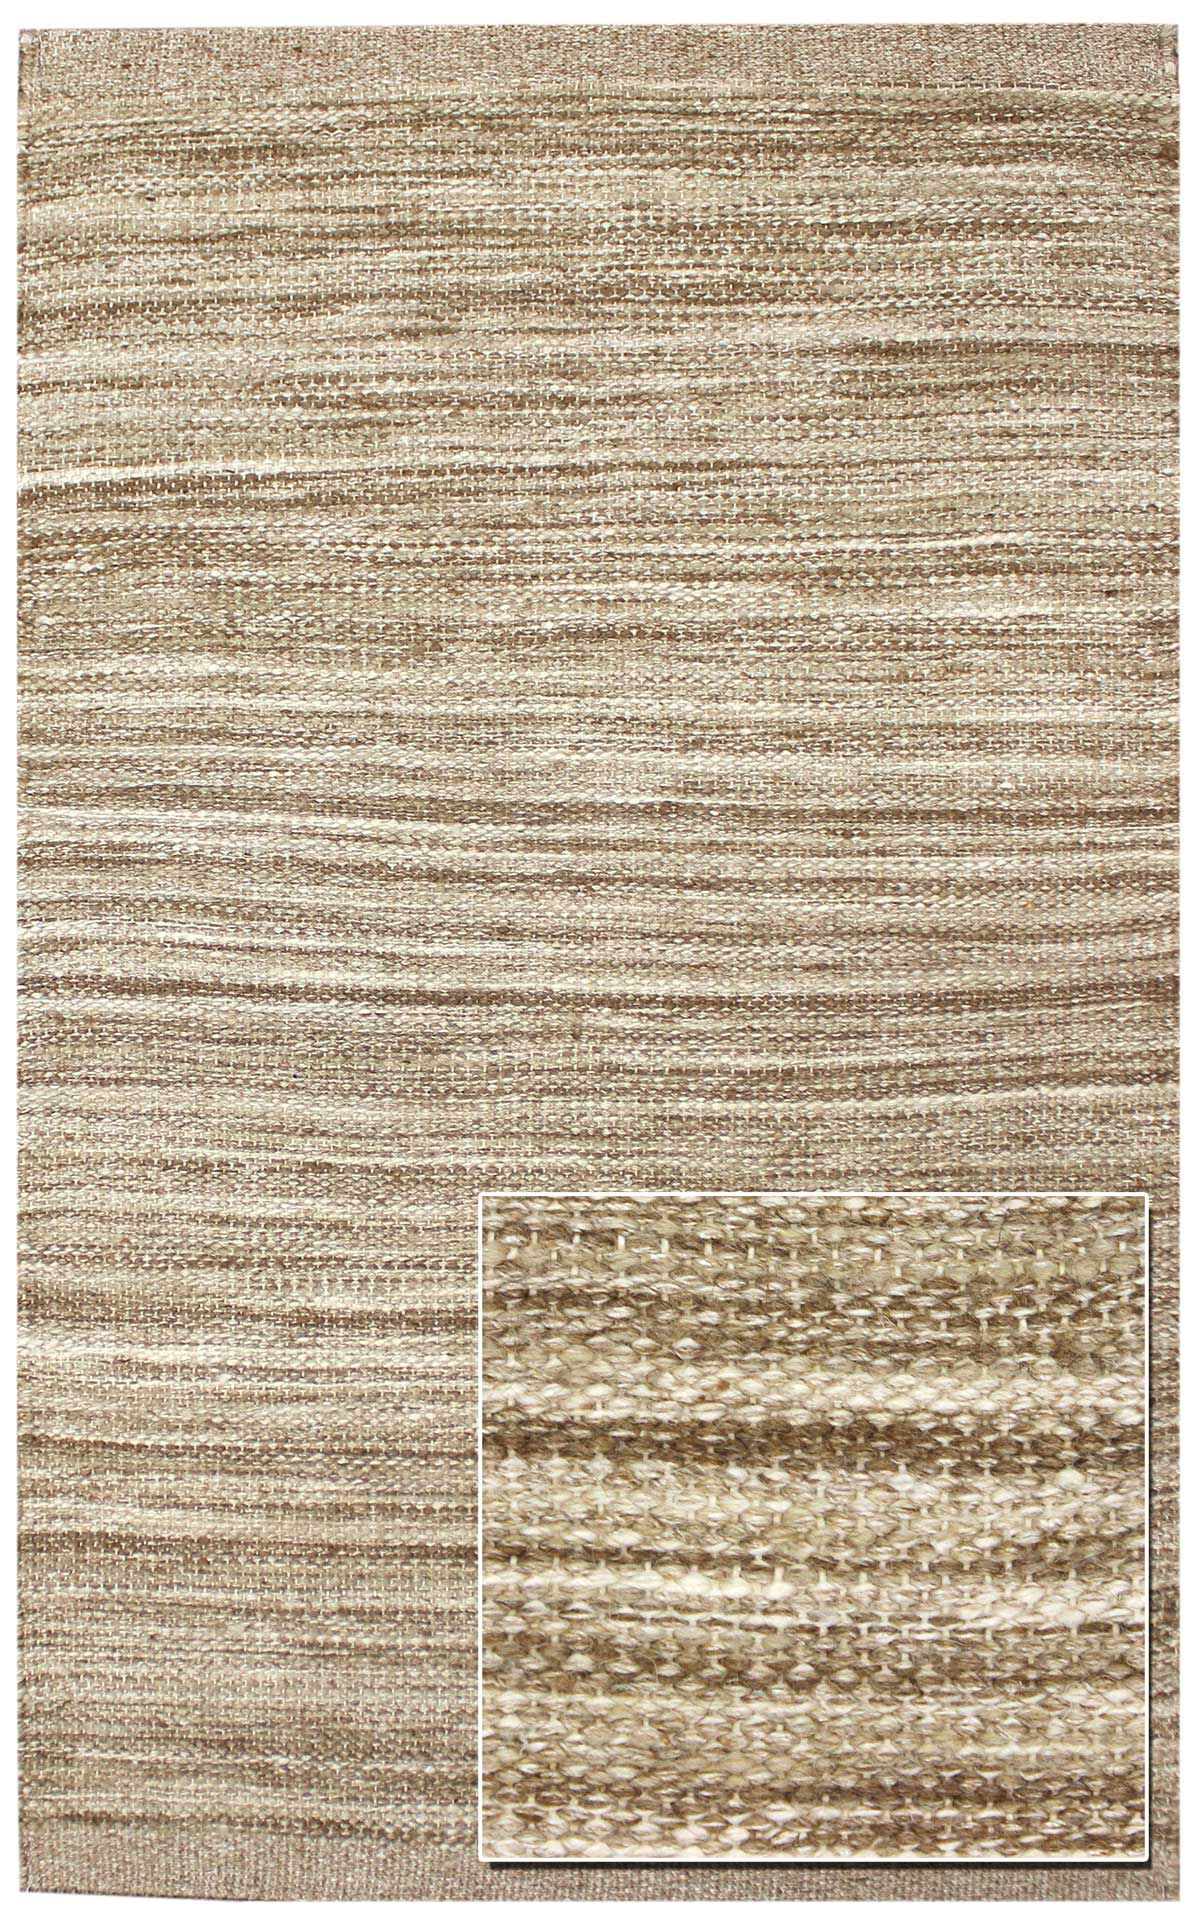 Striae Handwoven Contemporary Rug